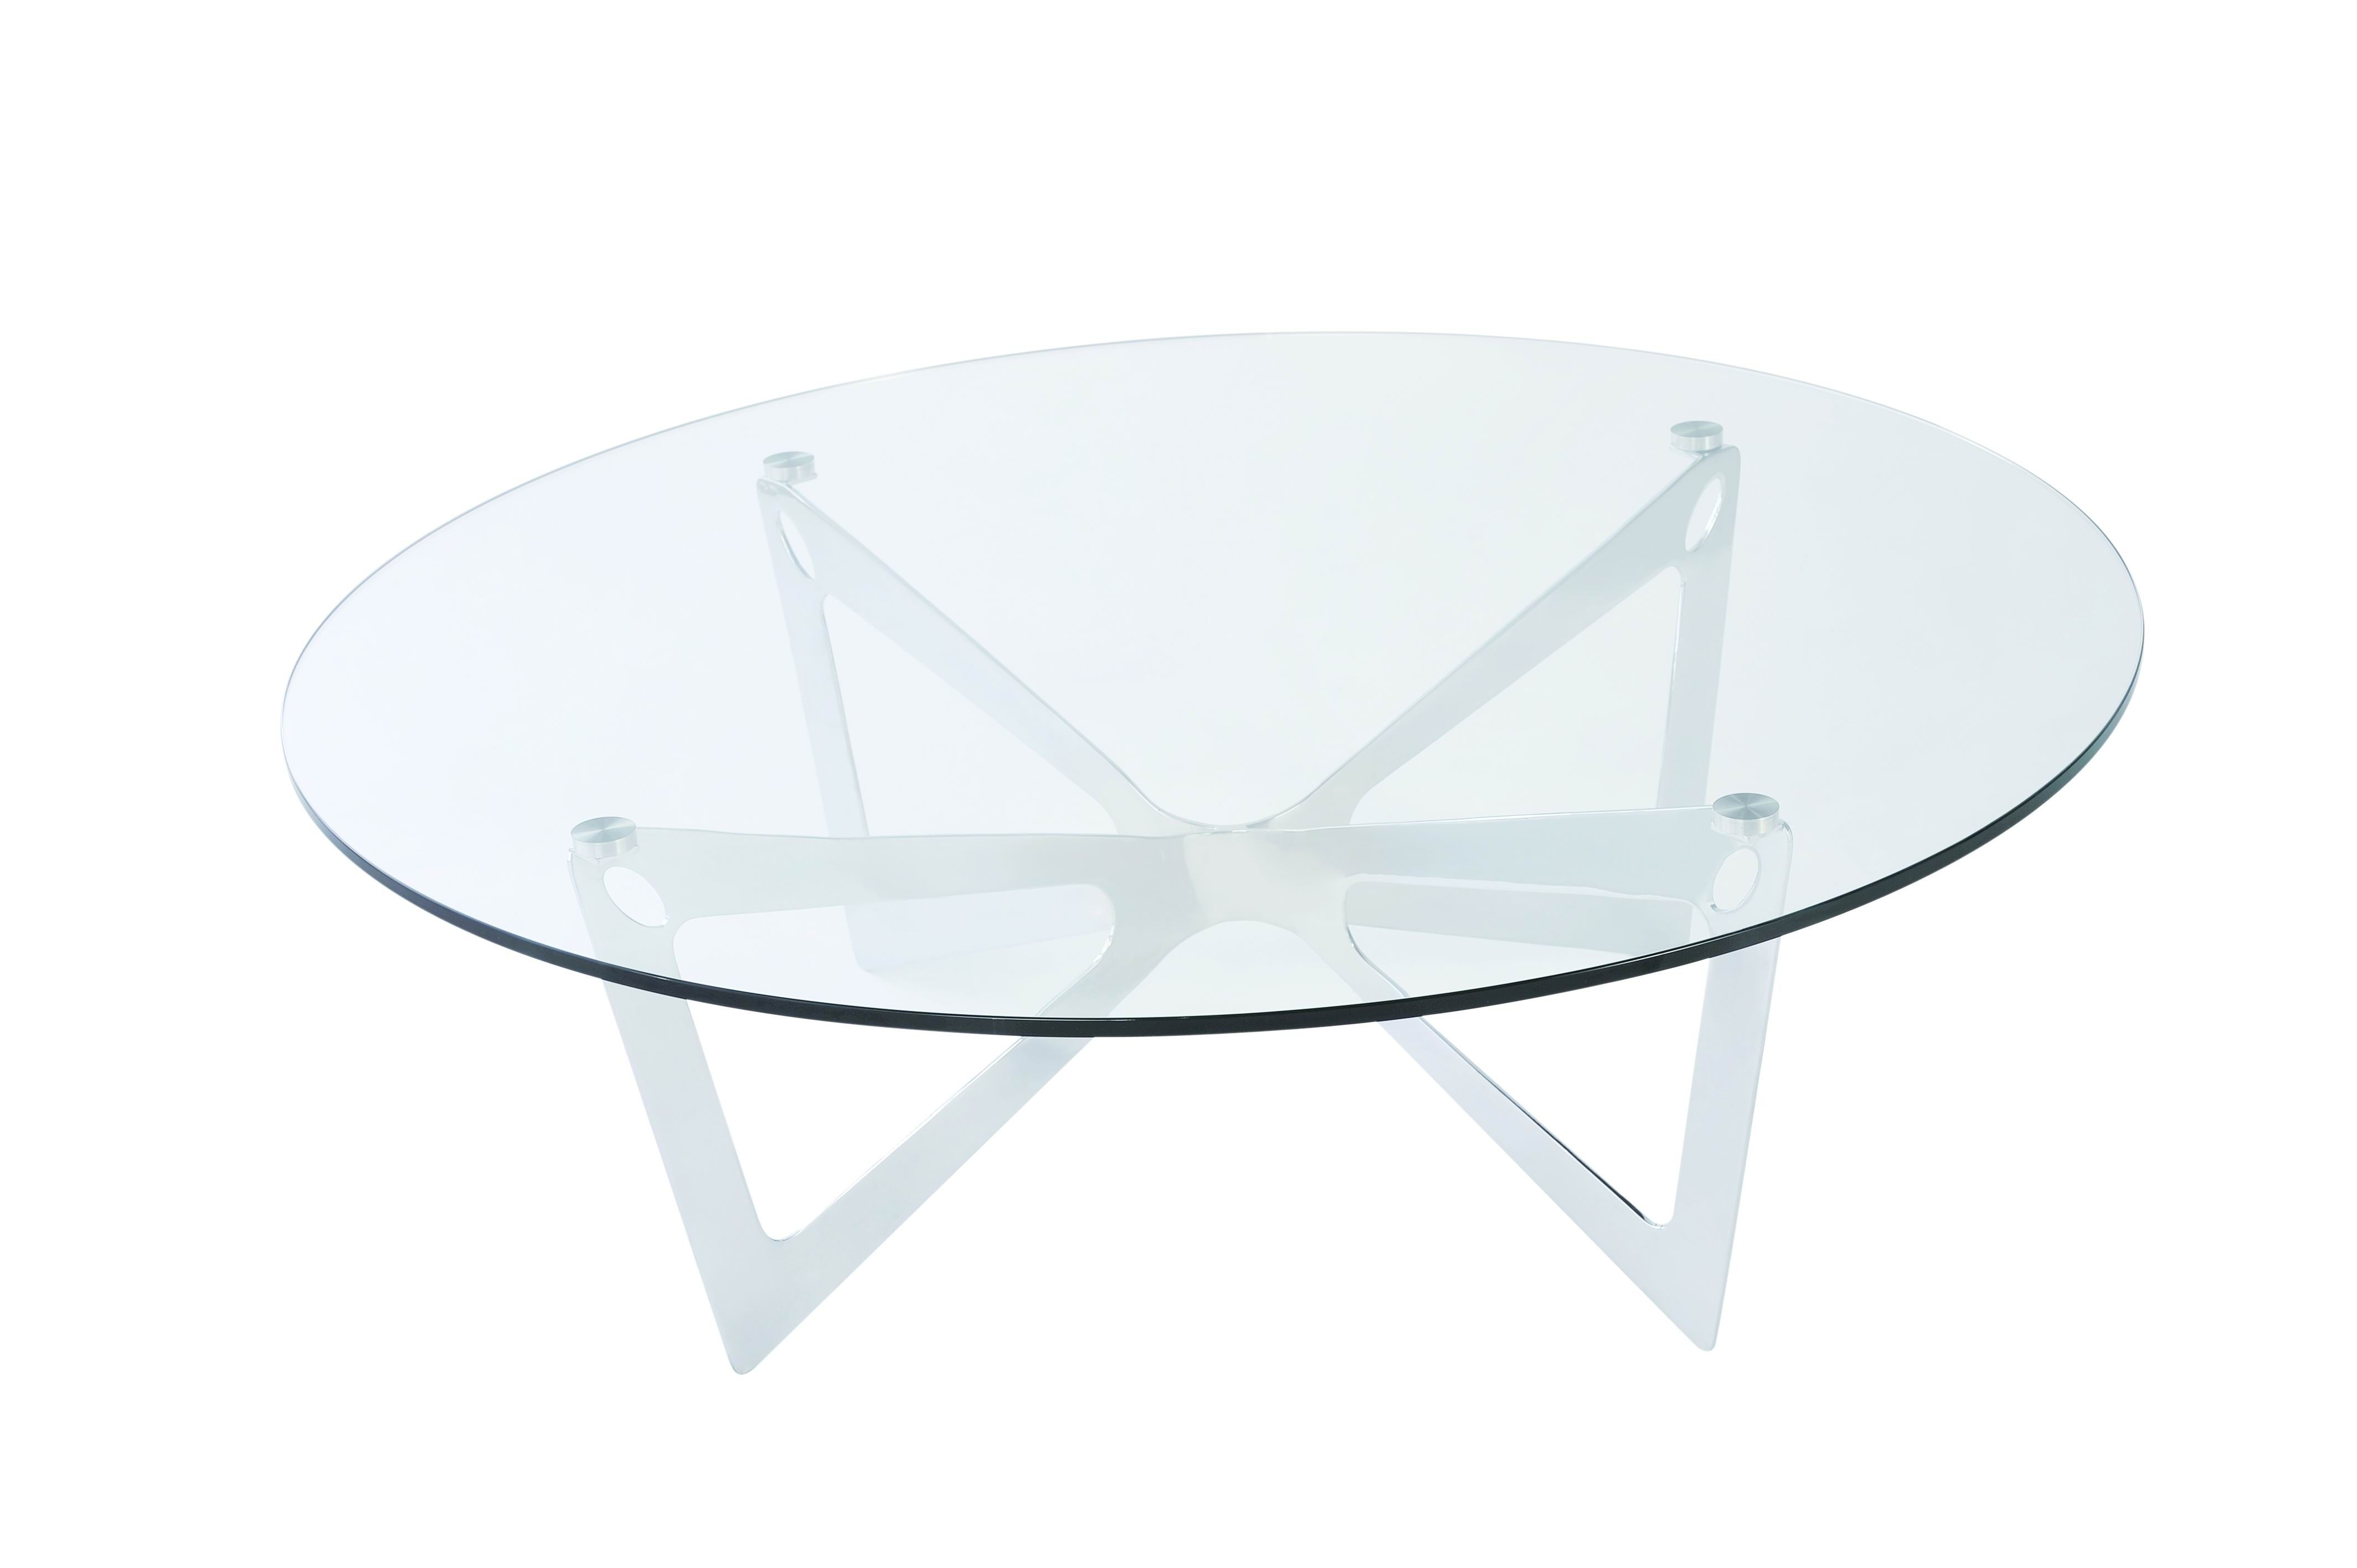 glass side table with white legs http cielobautista com